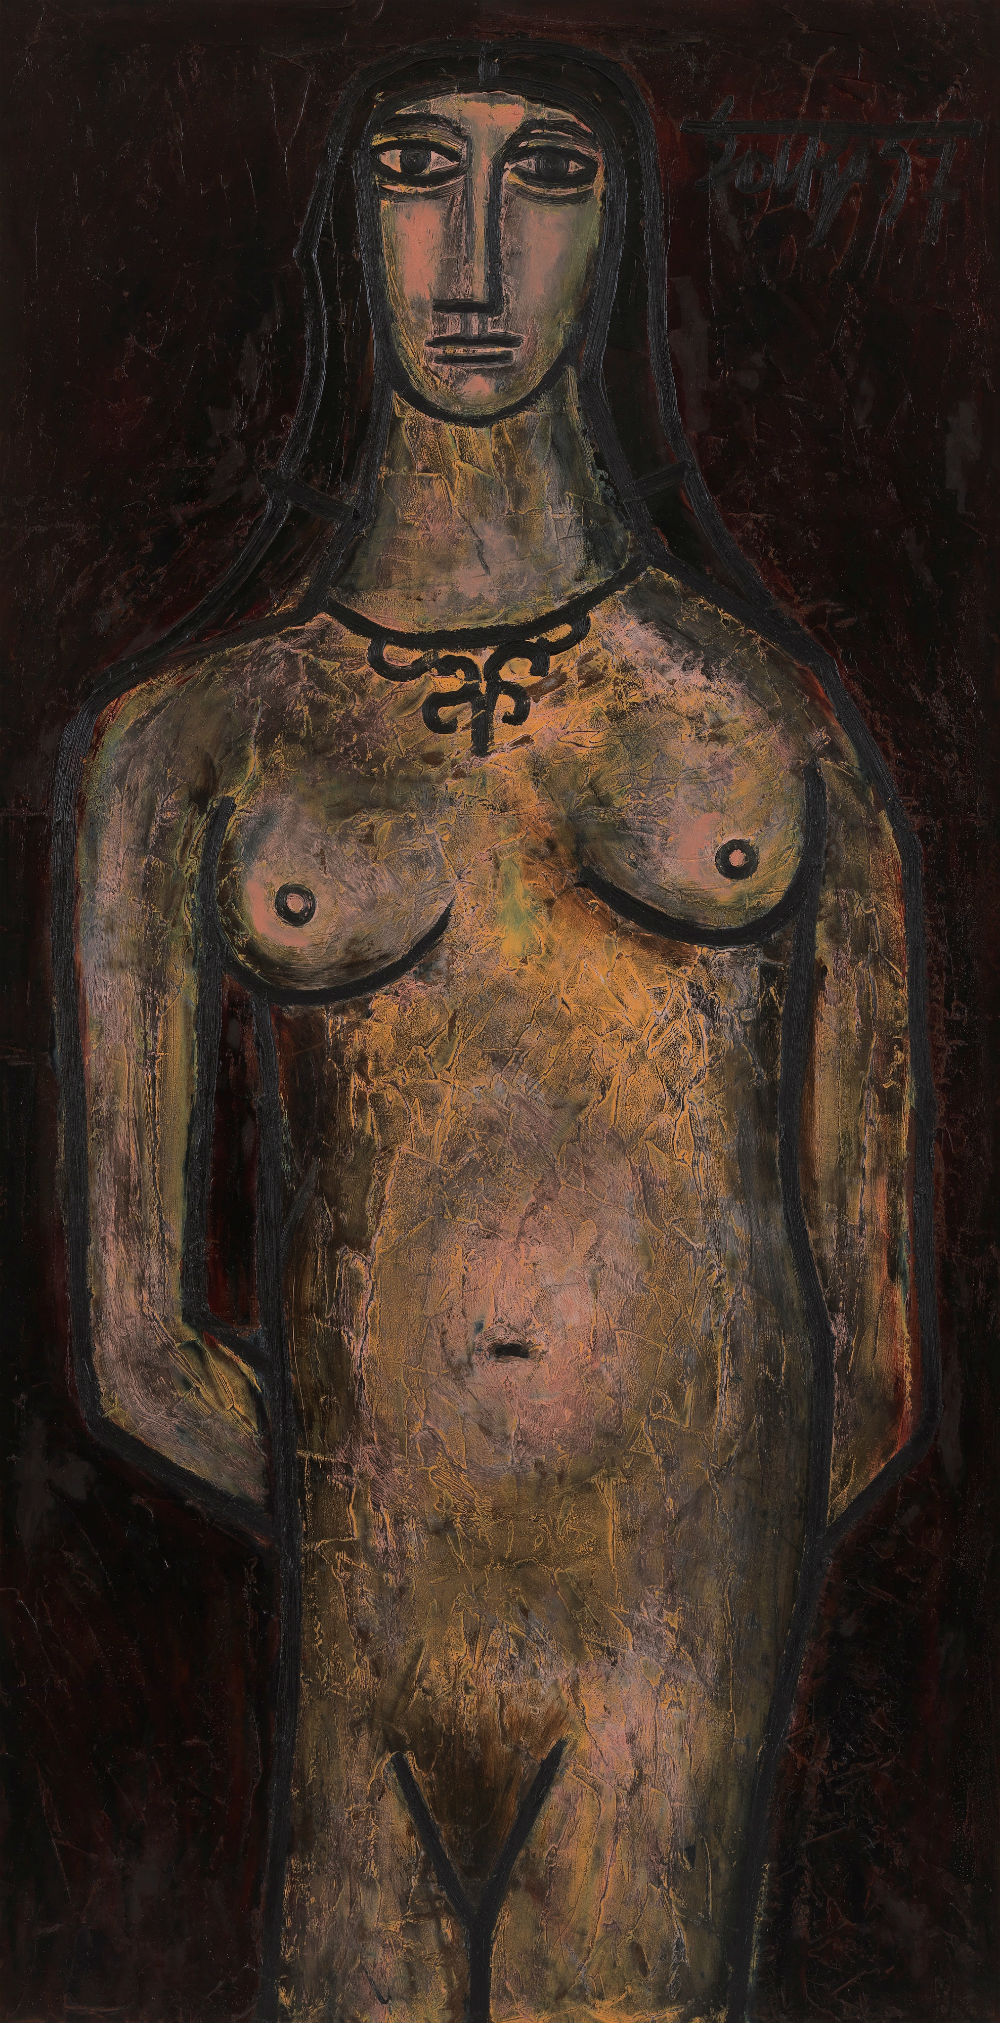 FN Souza, 'Standing Nude', 1957, Private collection. Image courtesy: Asia Society.